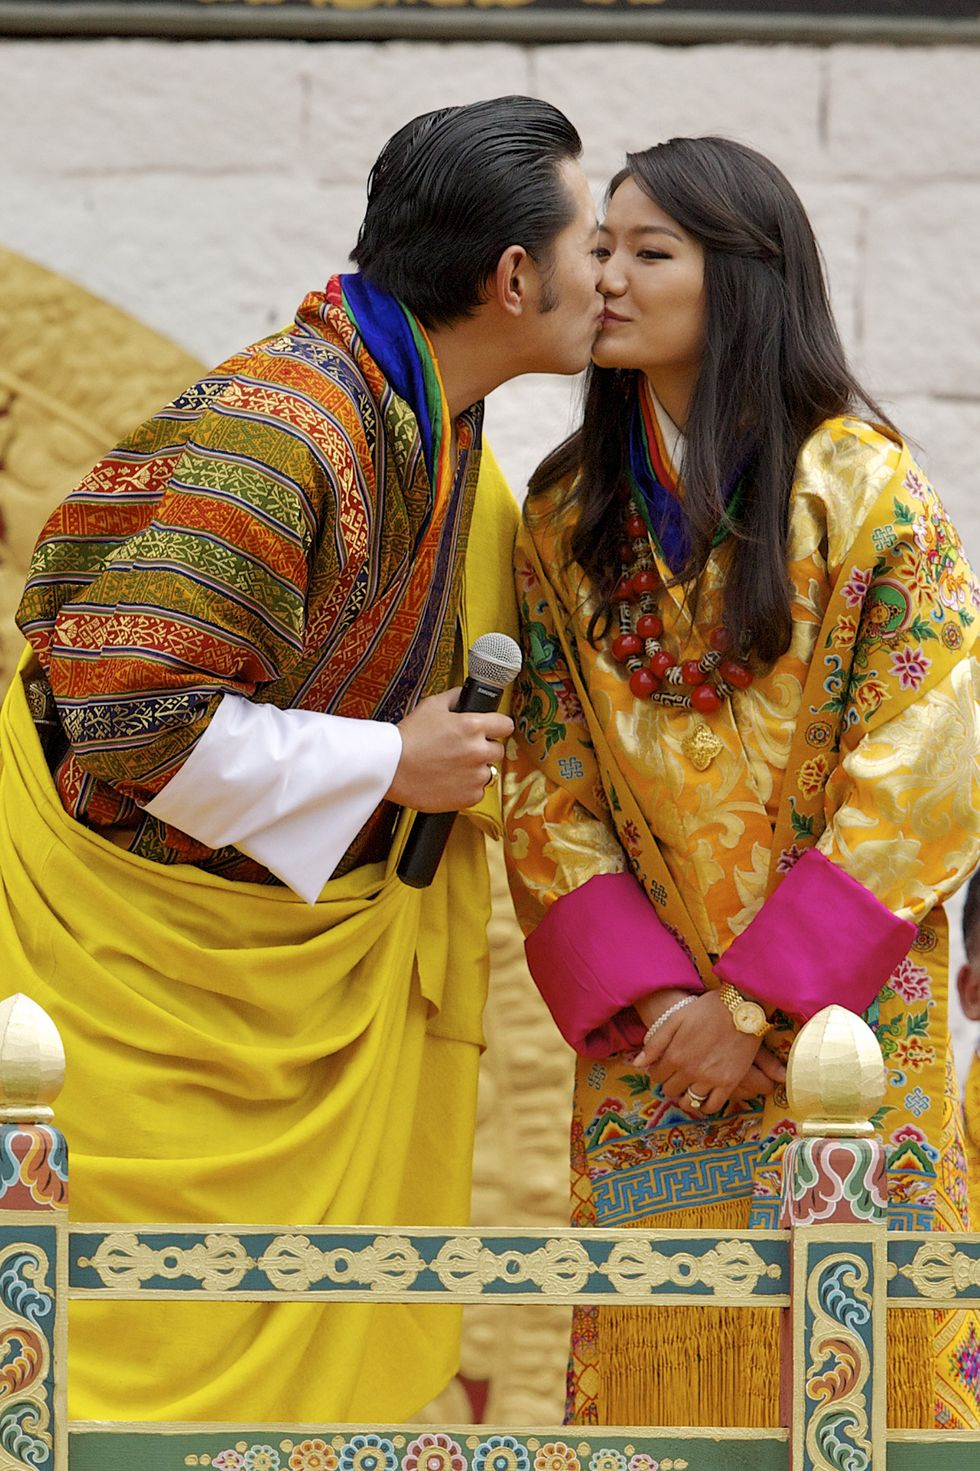 bhutan_royal_family_15.jpg